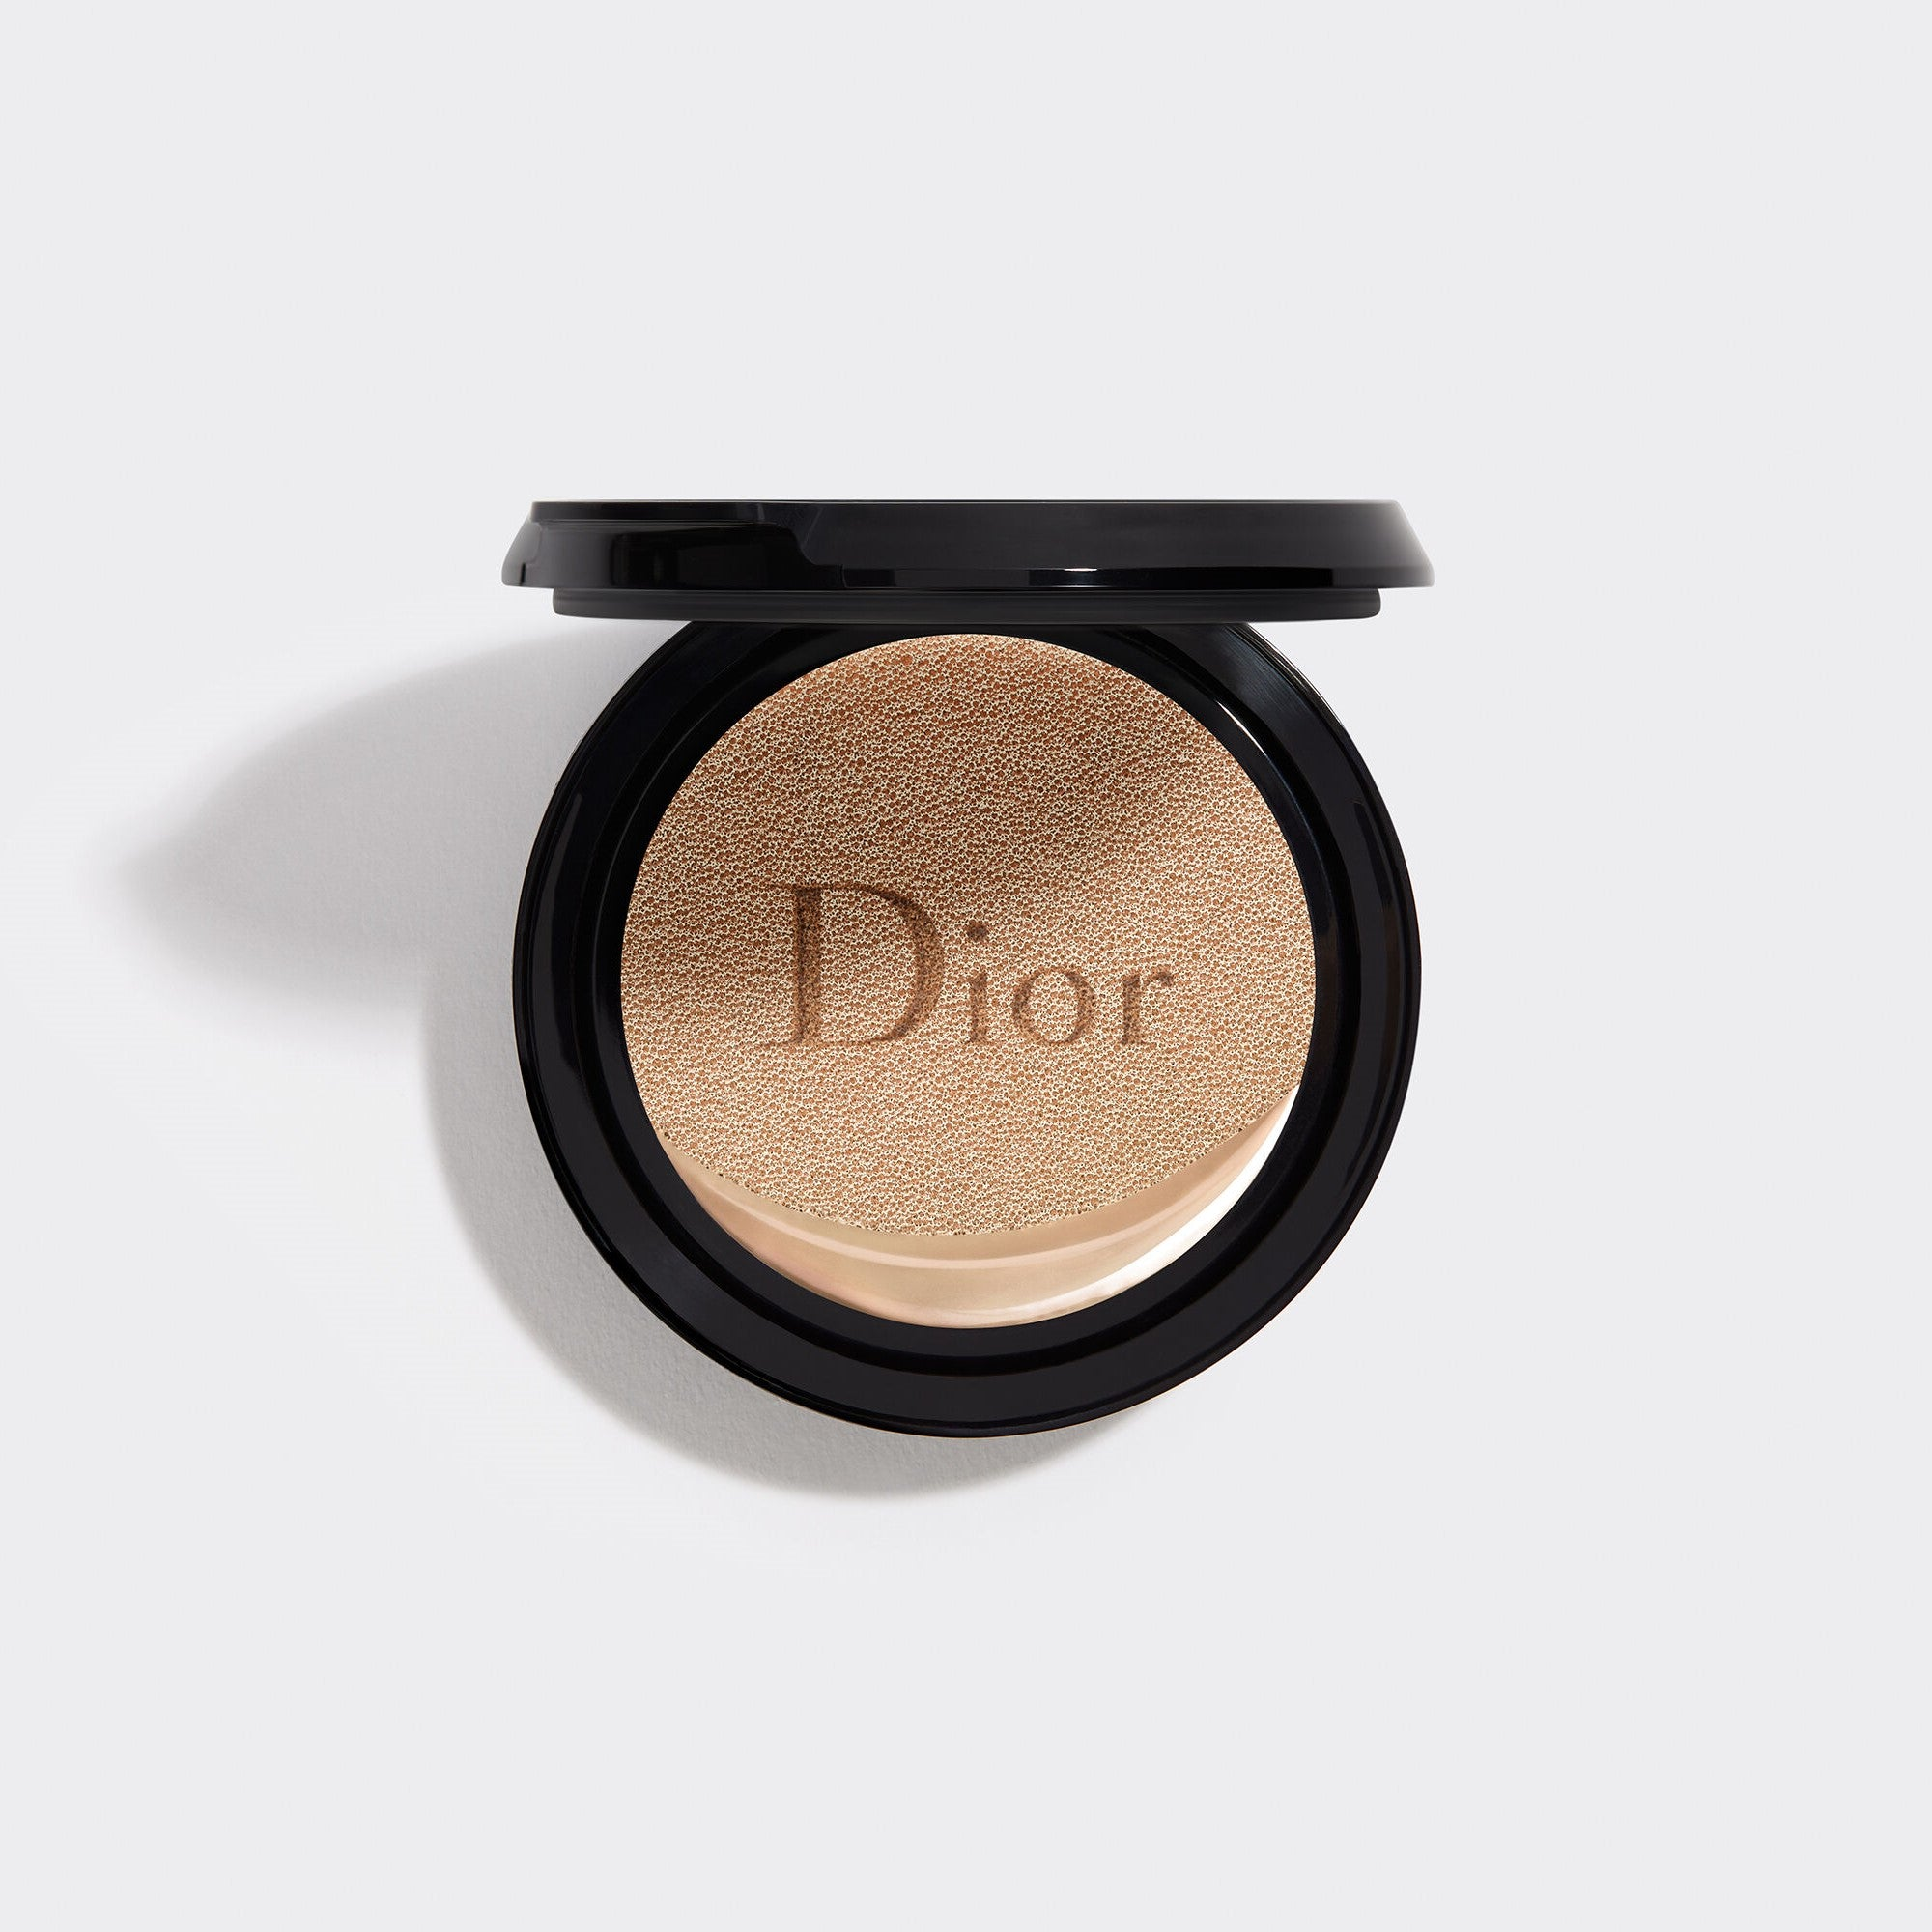 DIOR FOREVER COUTURE PERFECT CUSHION | 24H wear* - High perfection & luminous matte finish - Skin-caring fresh foundation - 24H hydration** - SPF 35 - PA+++ Refill